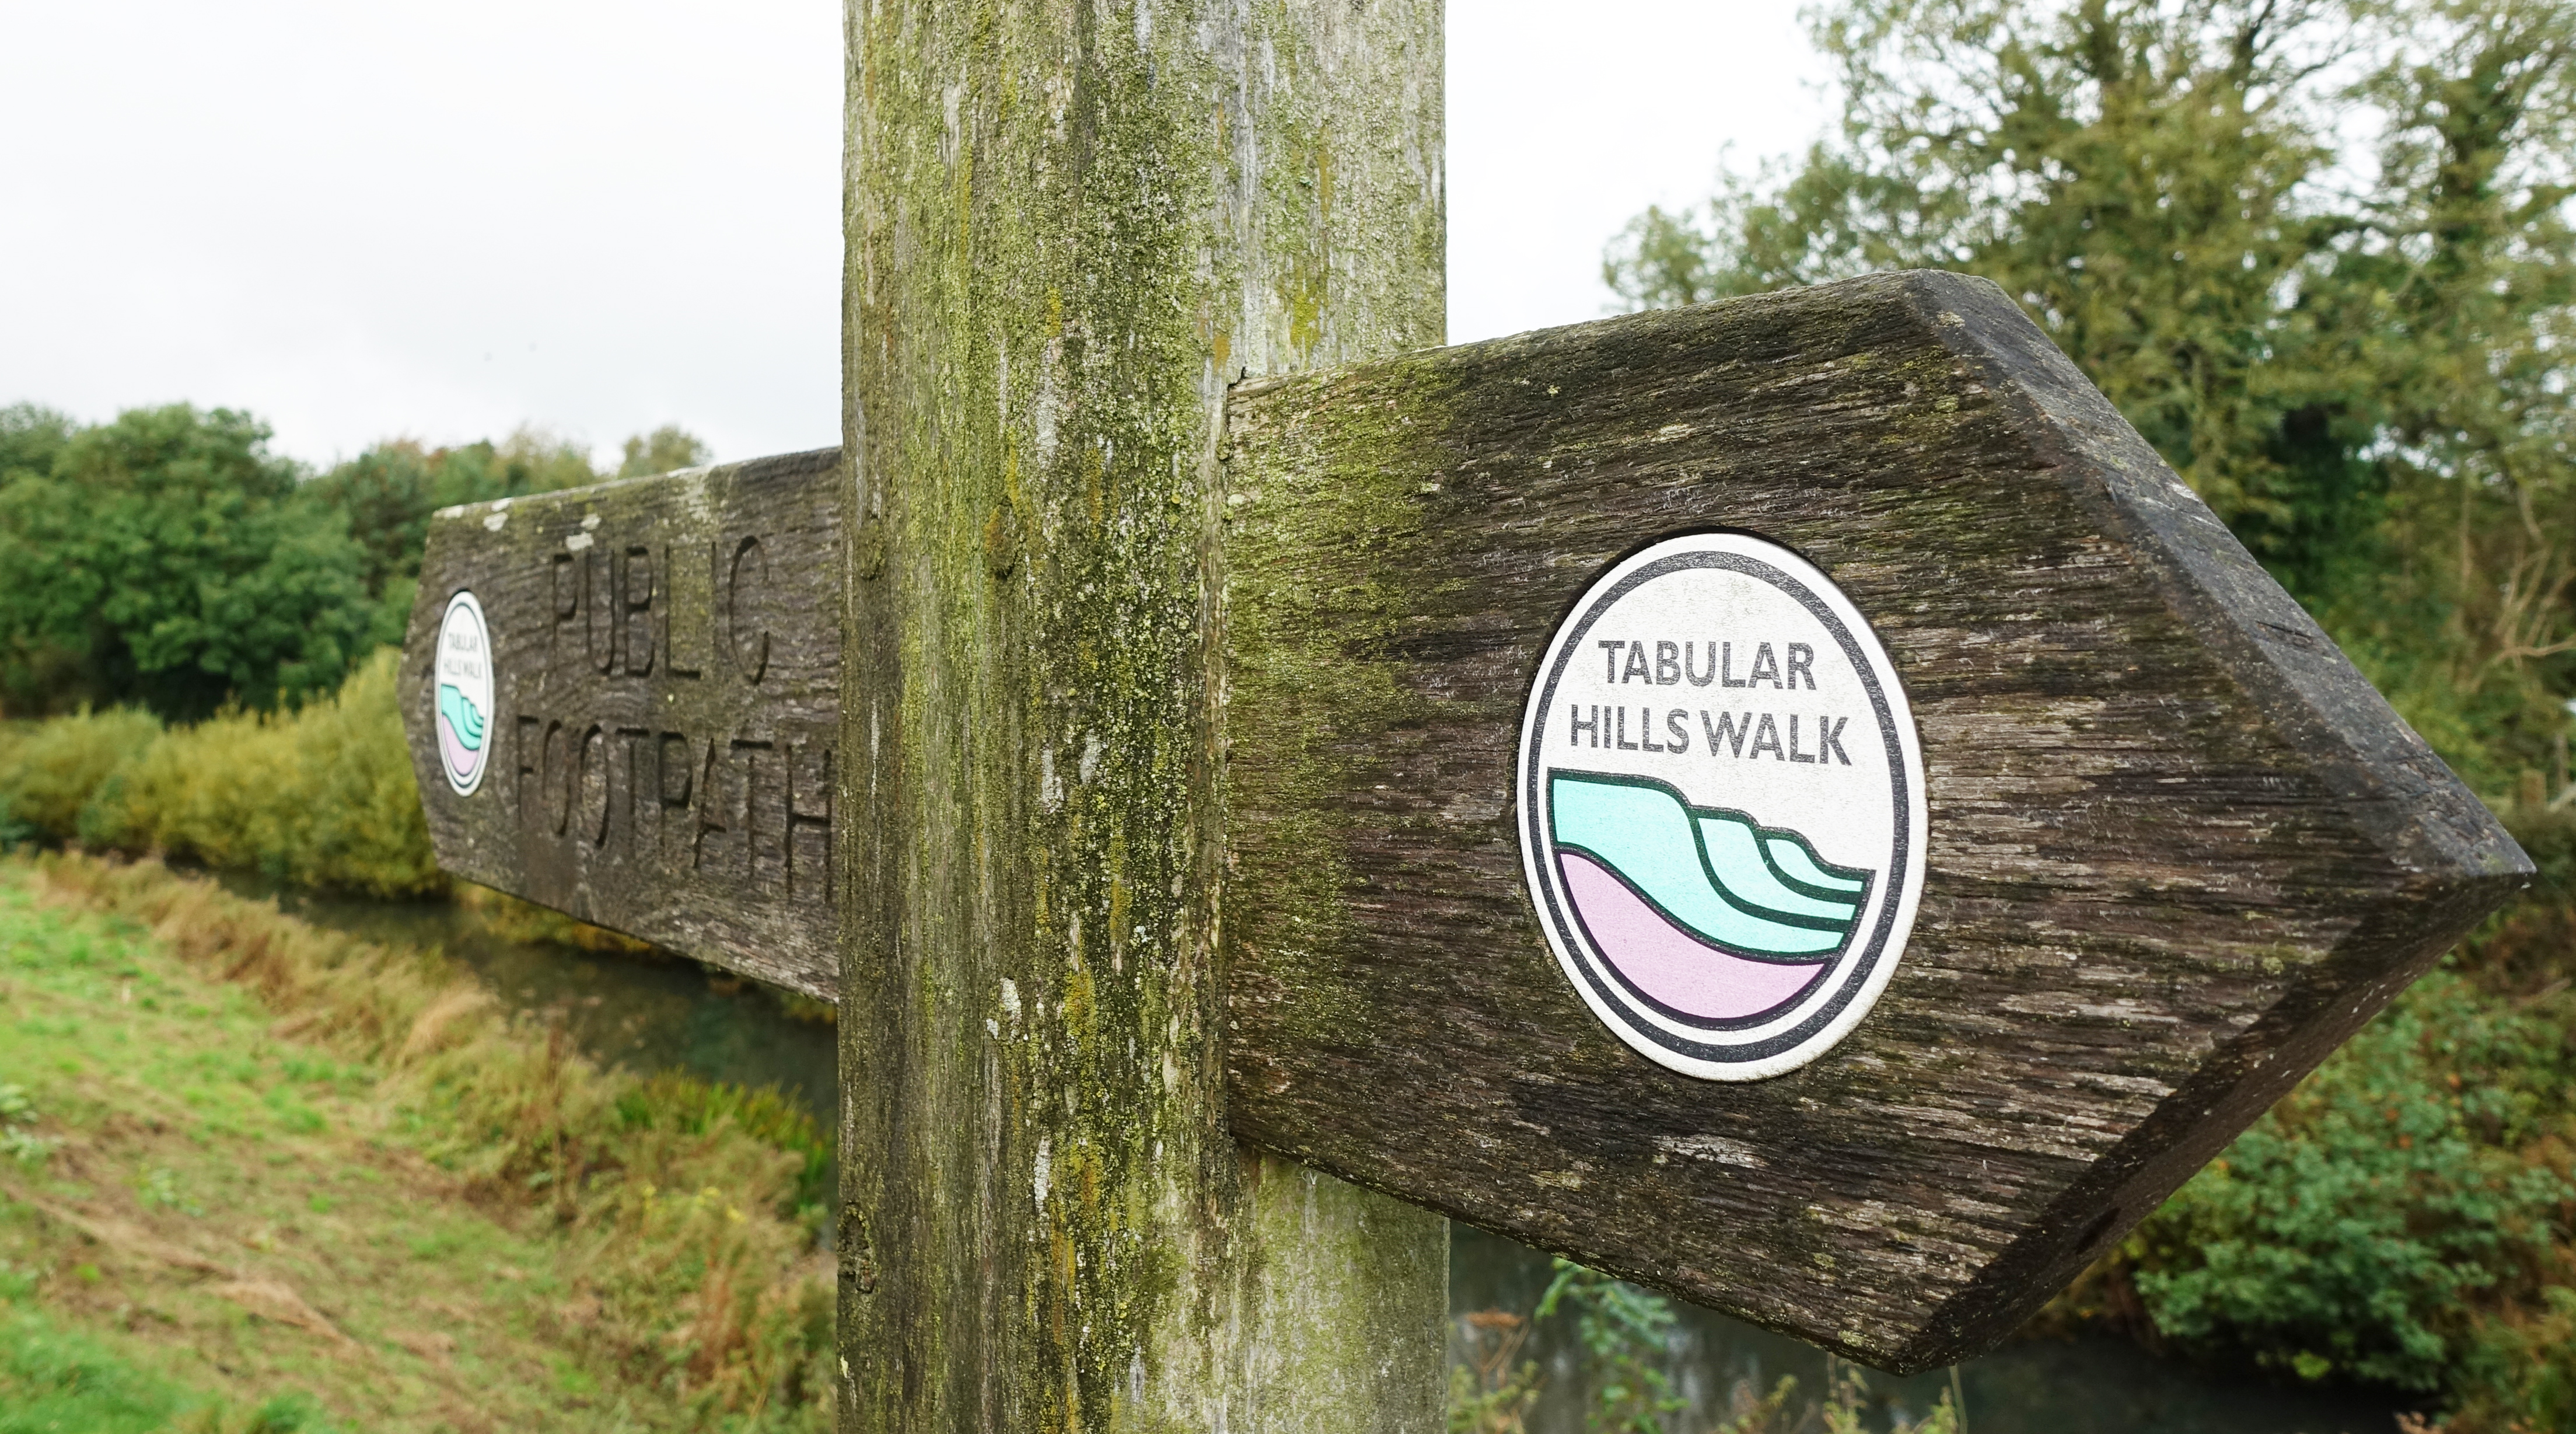 The Tabular Hills walk is pretty well sign posted throughout its fifty miles